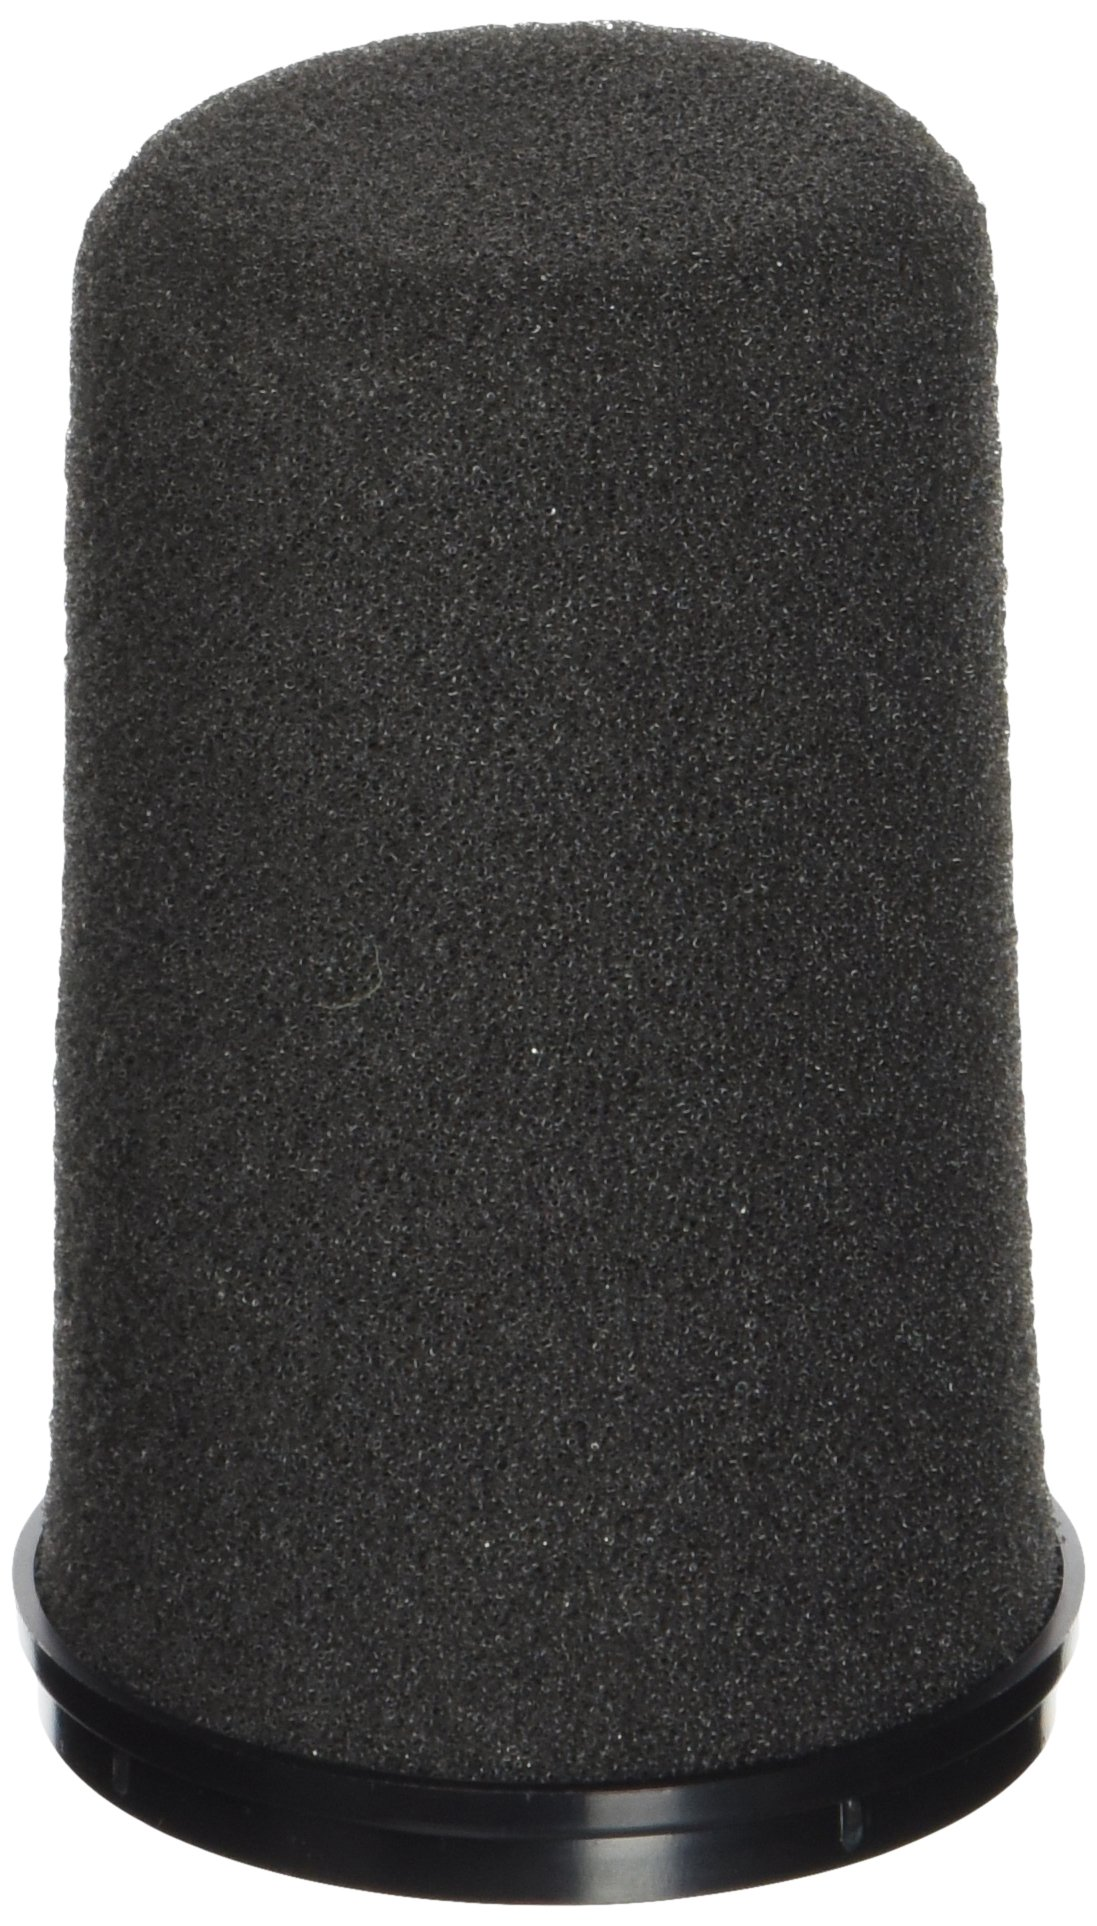 Shure RK345 Black Replacement Windscreen for SM7 Models by Shure